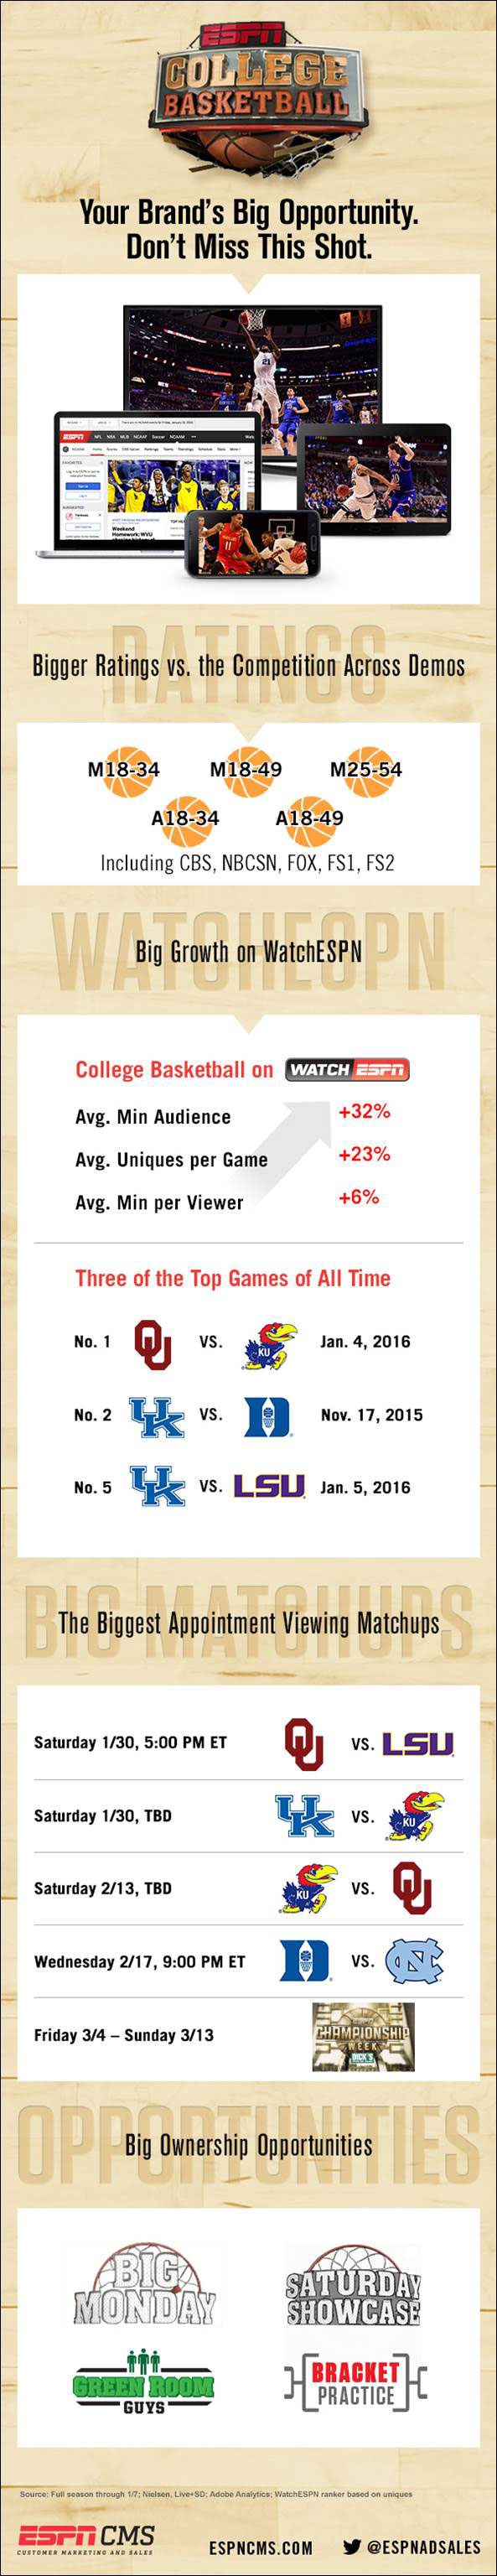 ESPNCMS Stream - College Basketball - Your Brands Biggest Opportunity. Don't Miss This Shot.